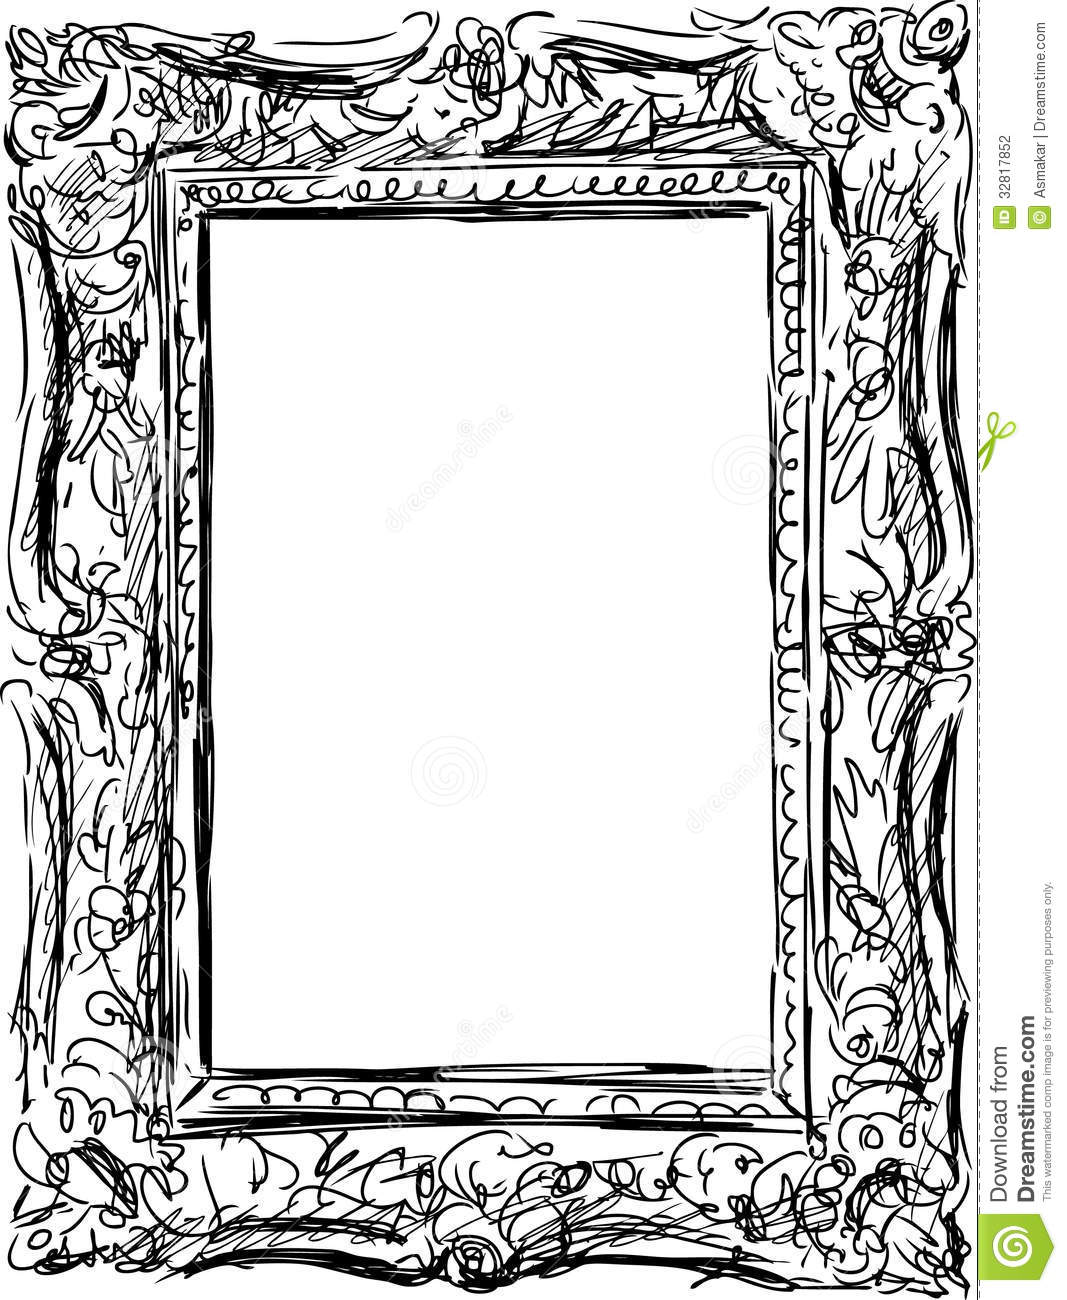 vector drawing of ancient frame in a baroque style